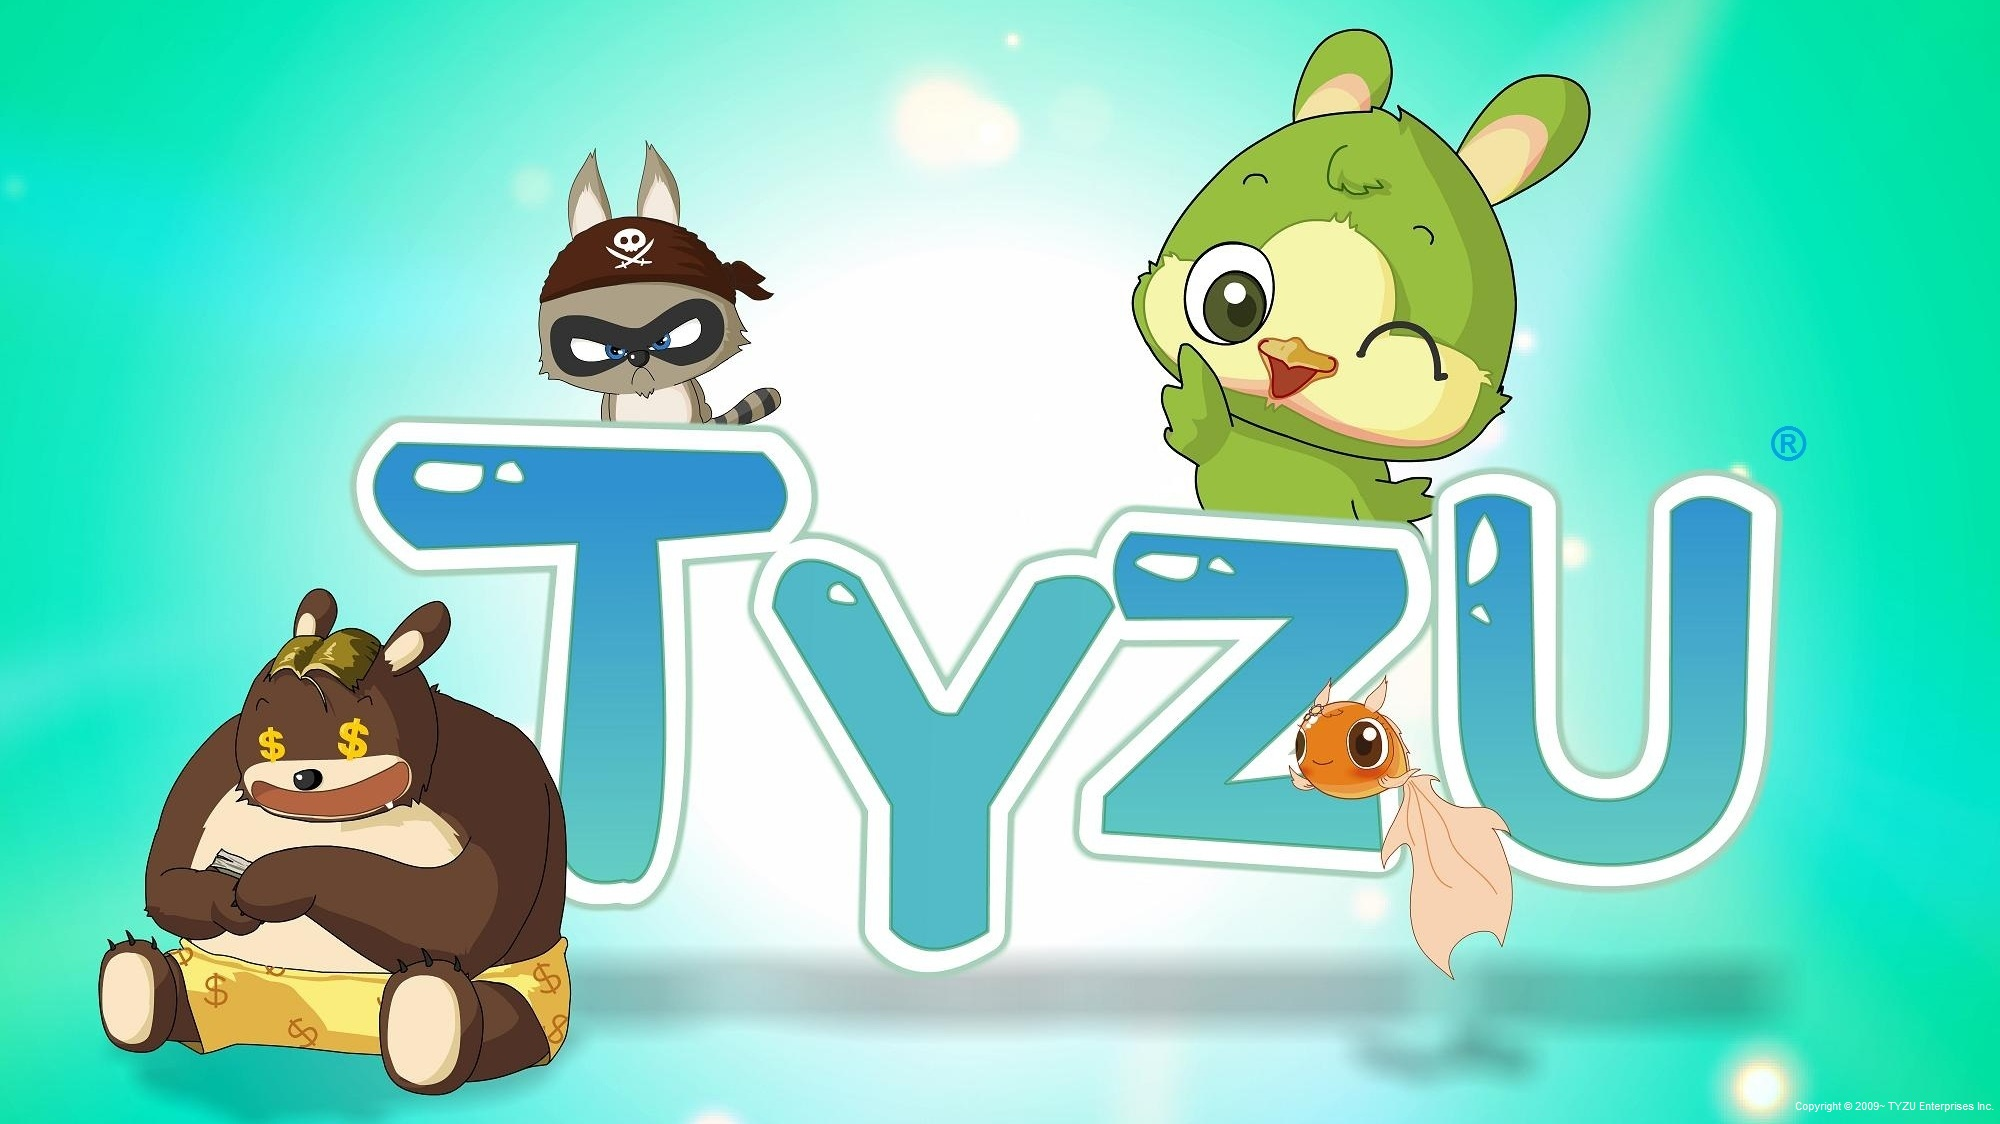 Tyzu Cute Cartoon Characters And Landscape Wallpapers And Music